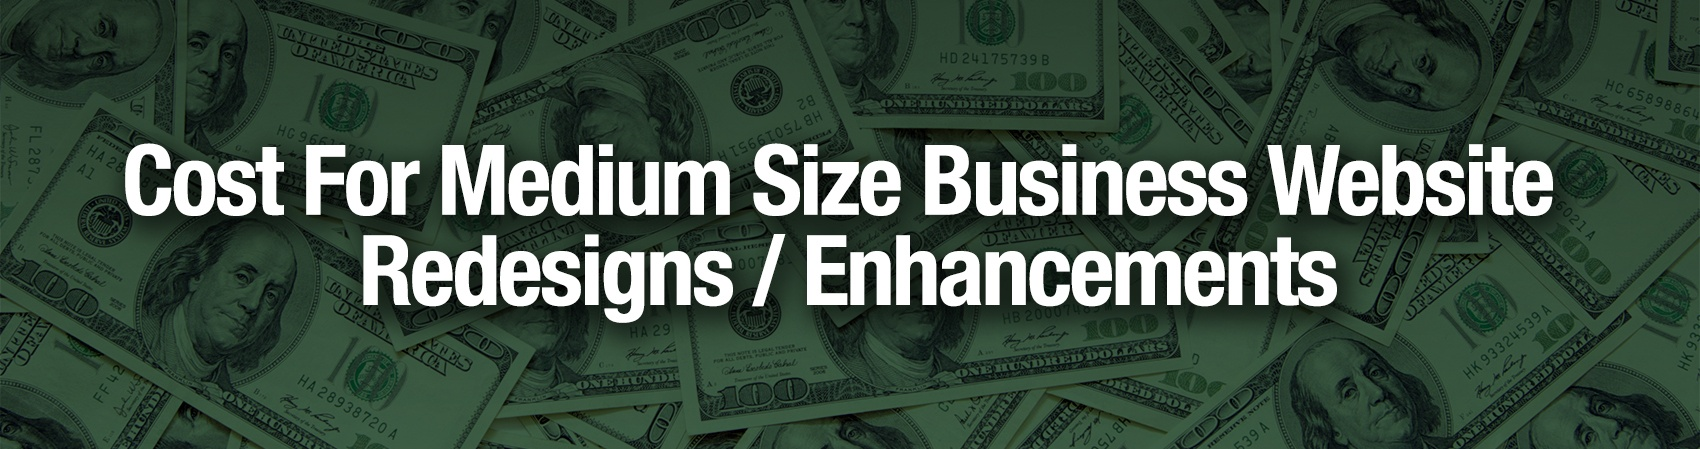 Cost-For-Medium-Size_Business-Website-Redesigns-Enhancements